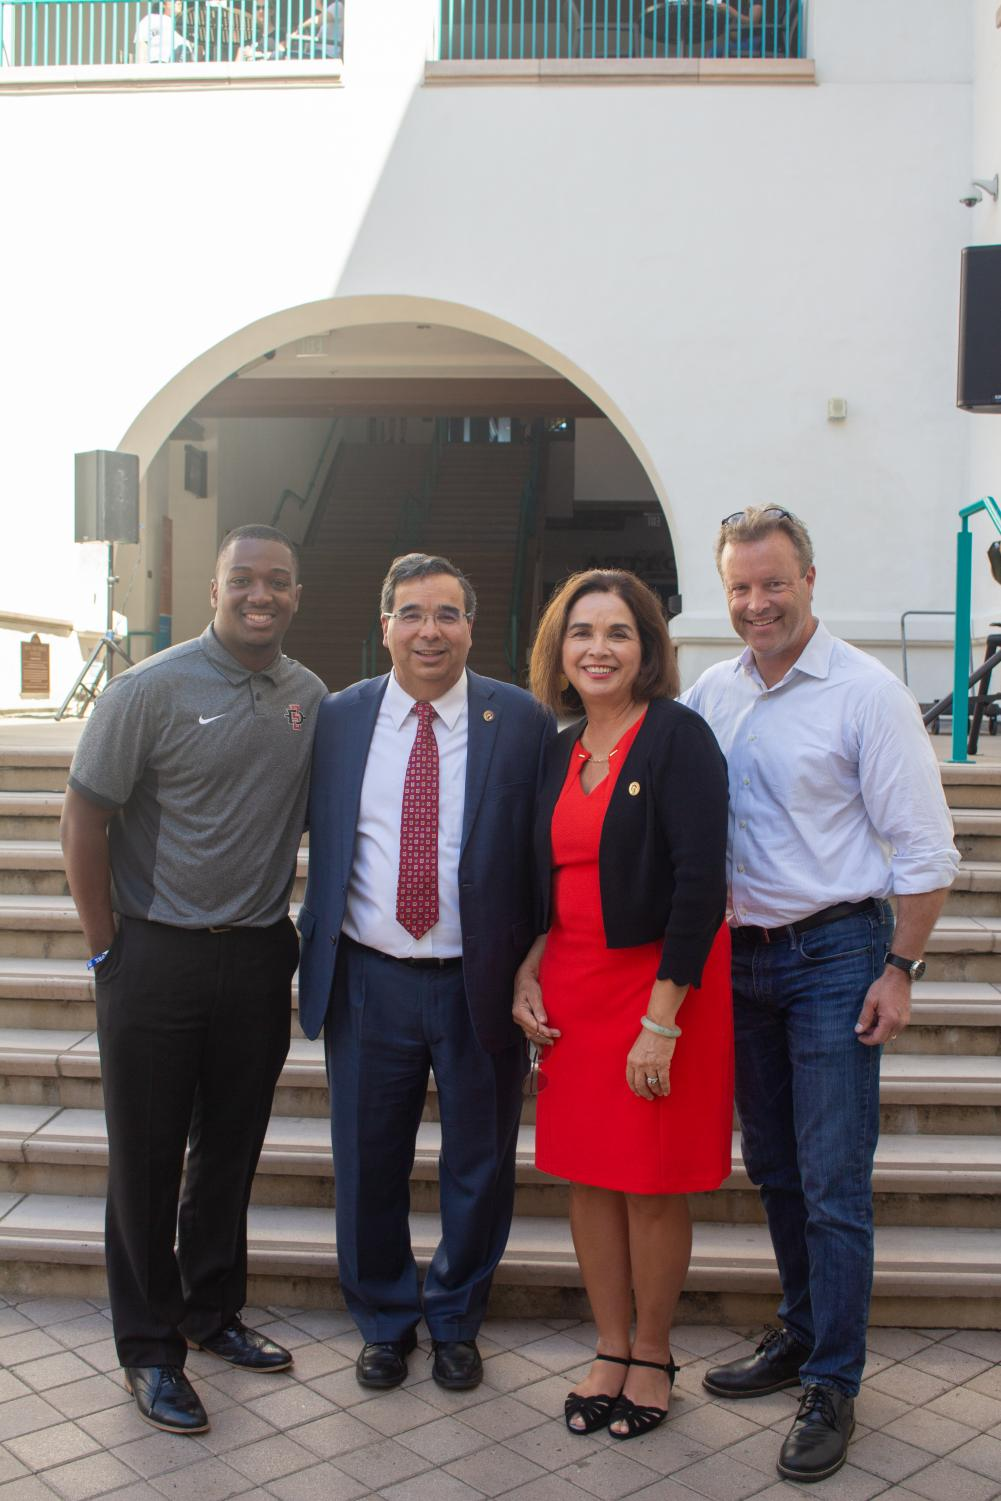 Pictured left to right: A.S. President Christian Onwuka, Provost and Senior Vice President Dr. Salvador Hector Ochoa, SDSU President Adela de la Torre, and Chair of the University Senate Mark Wheeler.